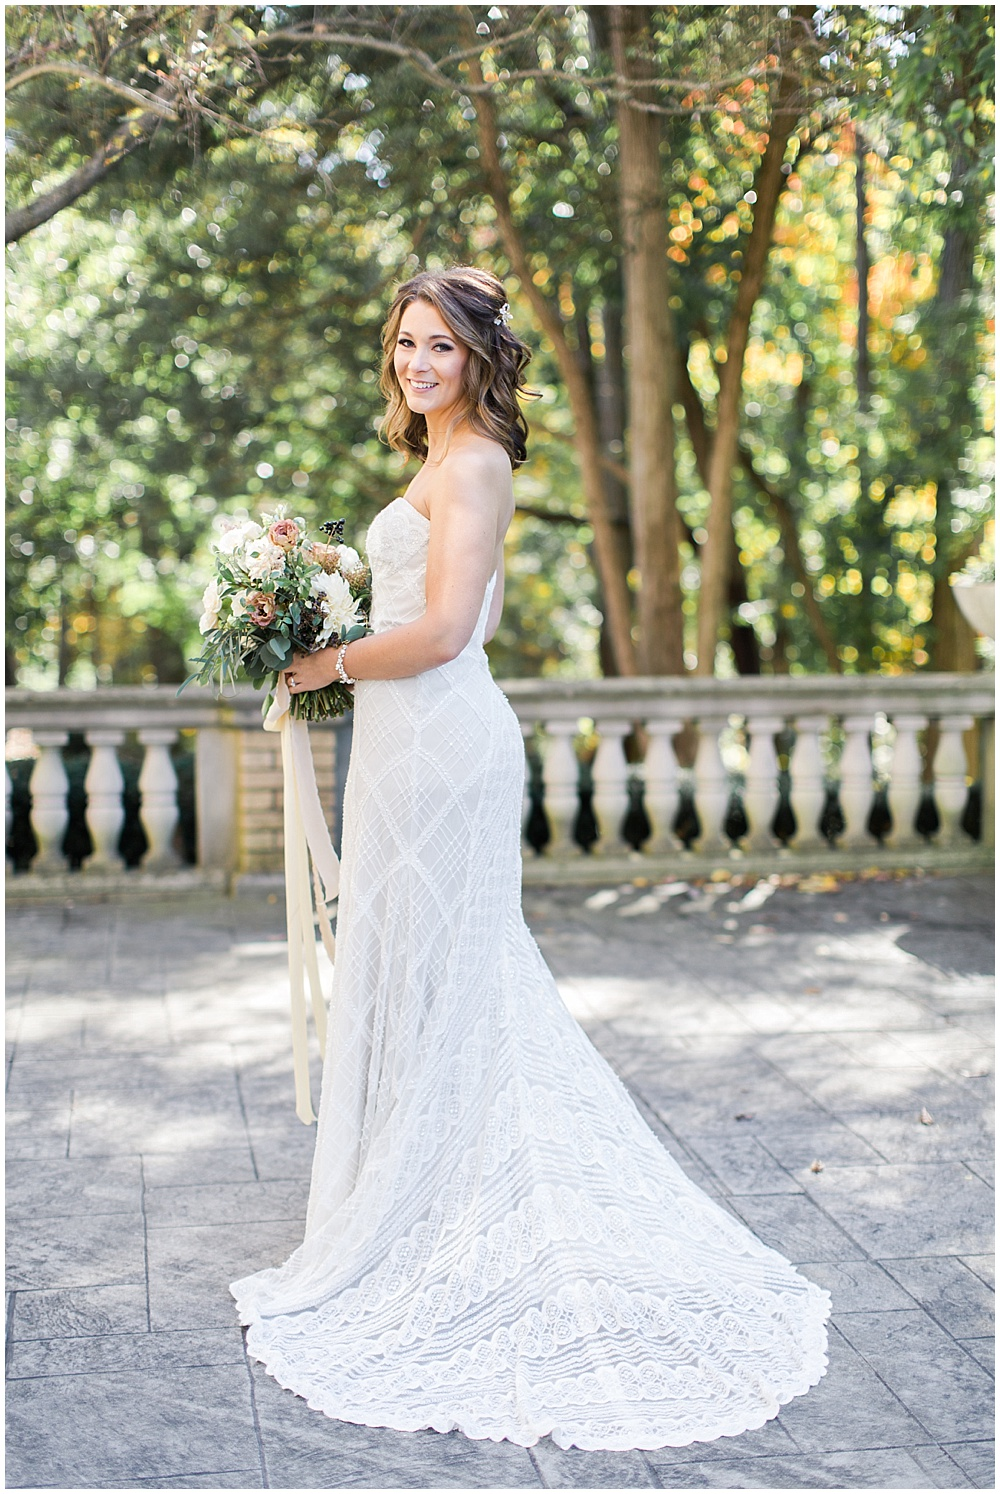 Lace wedding gown | Navy and Gold Wedding at Laurel Hall with Ivan & Louise Photography + Jessica Dum Wedding Coordination